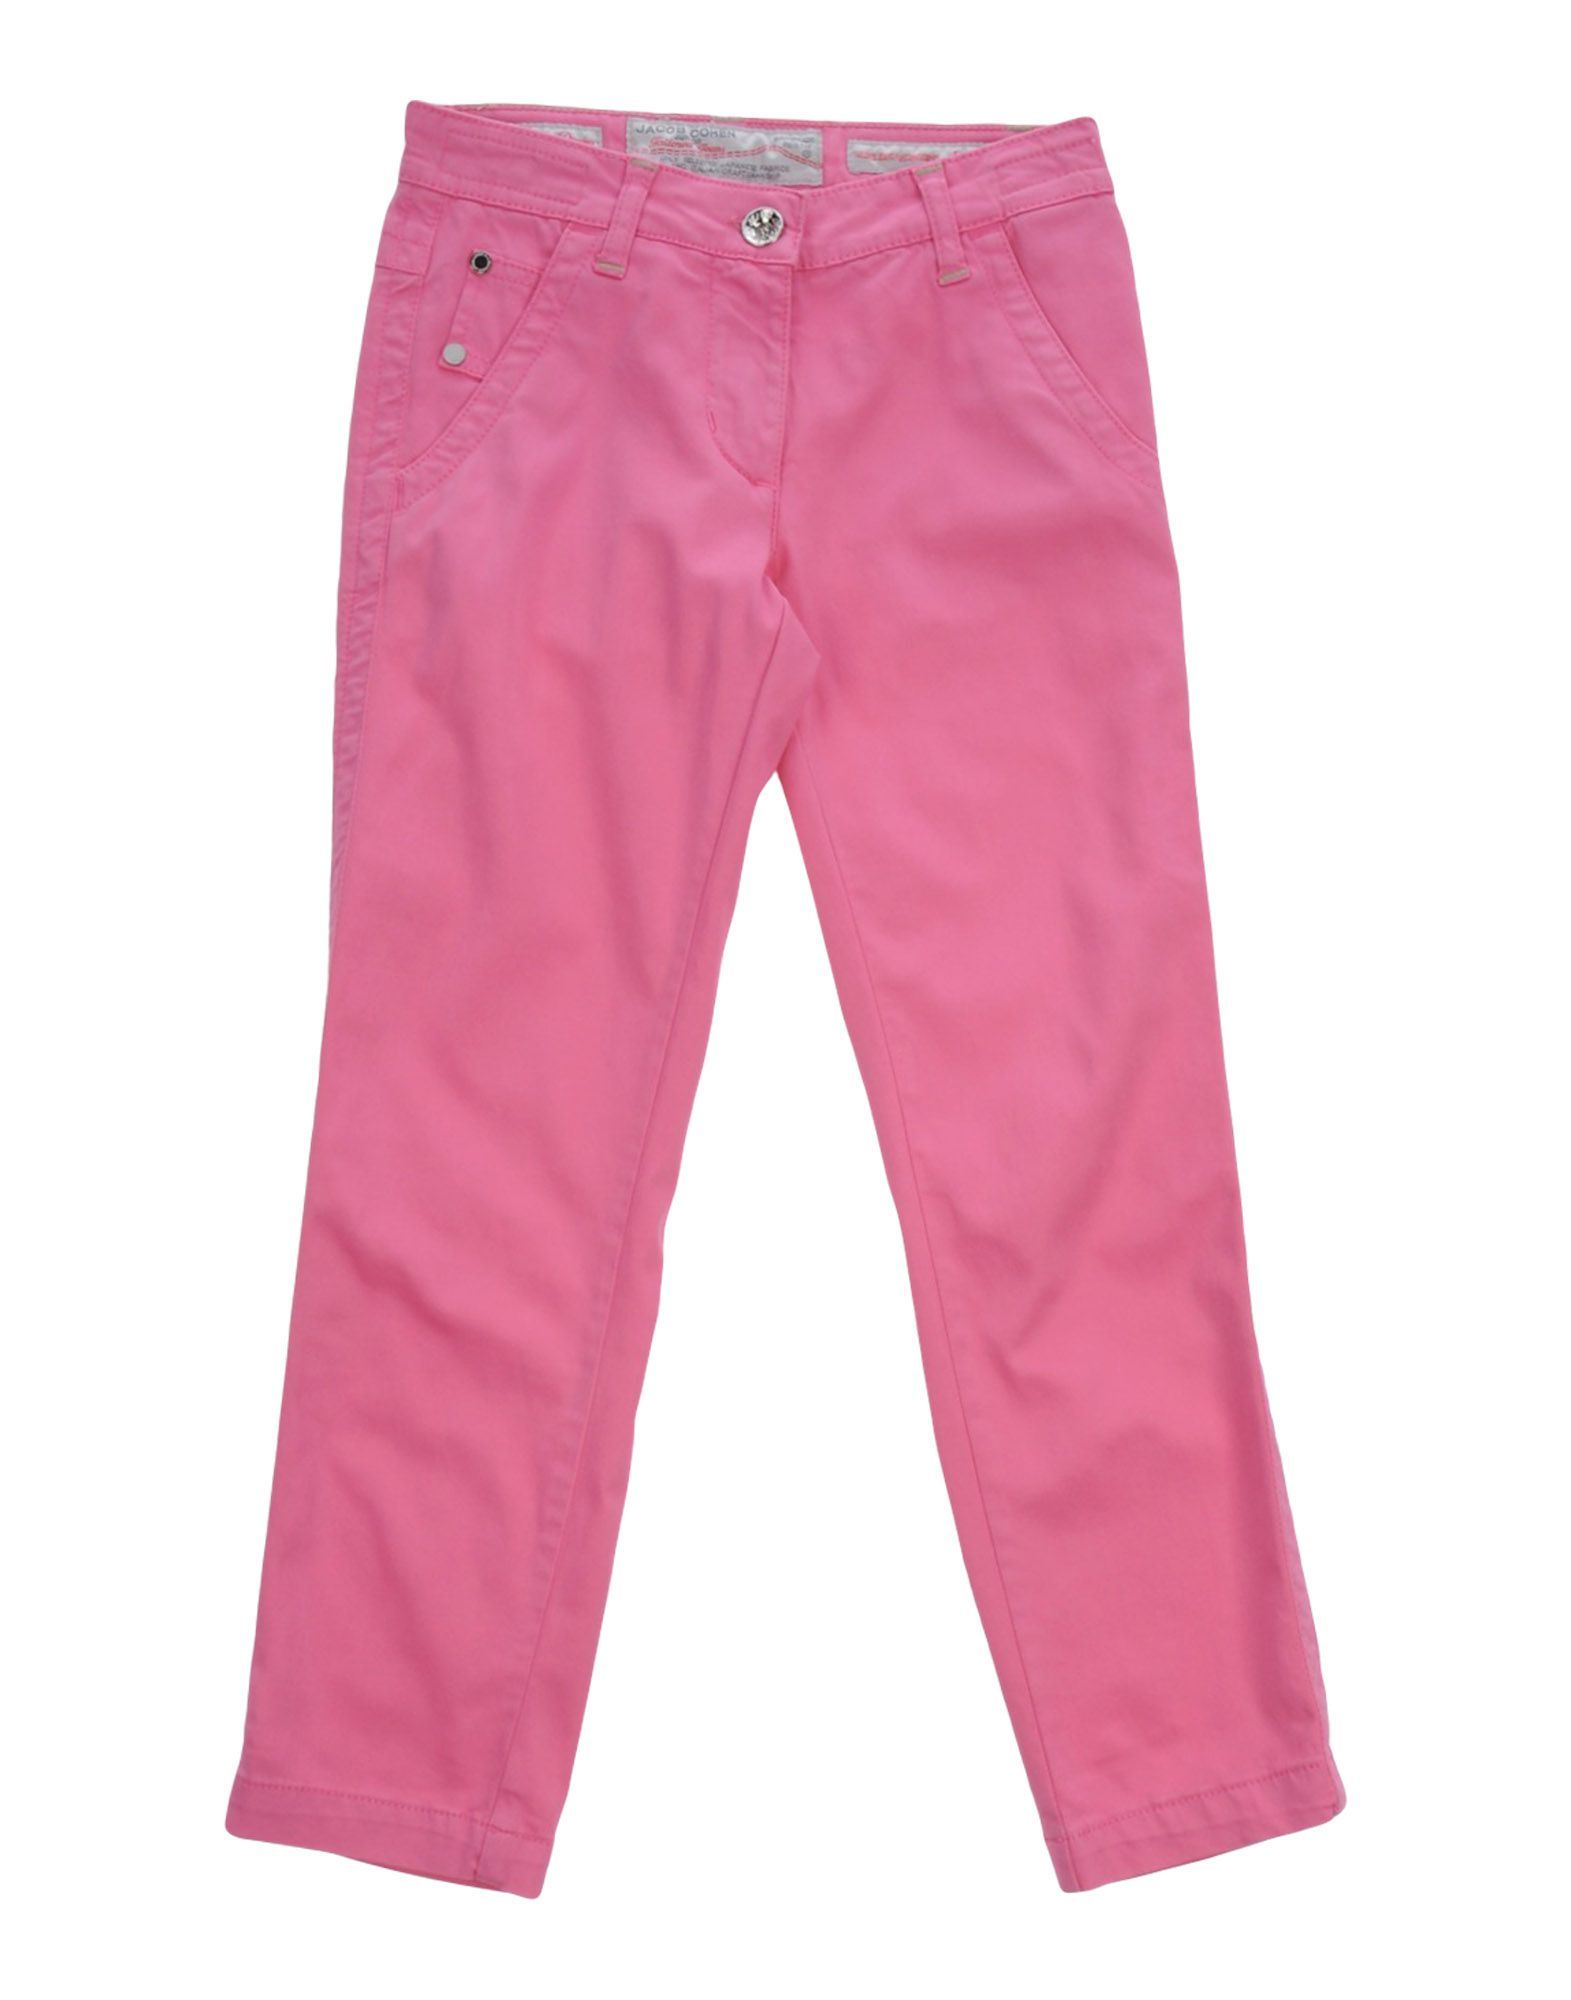 TROUSERS Jacob Coh?n Junior Pink Girl Cotton